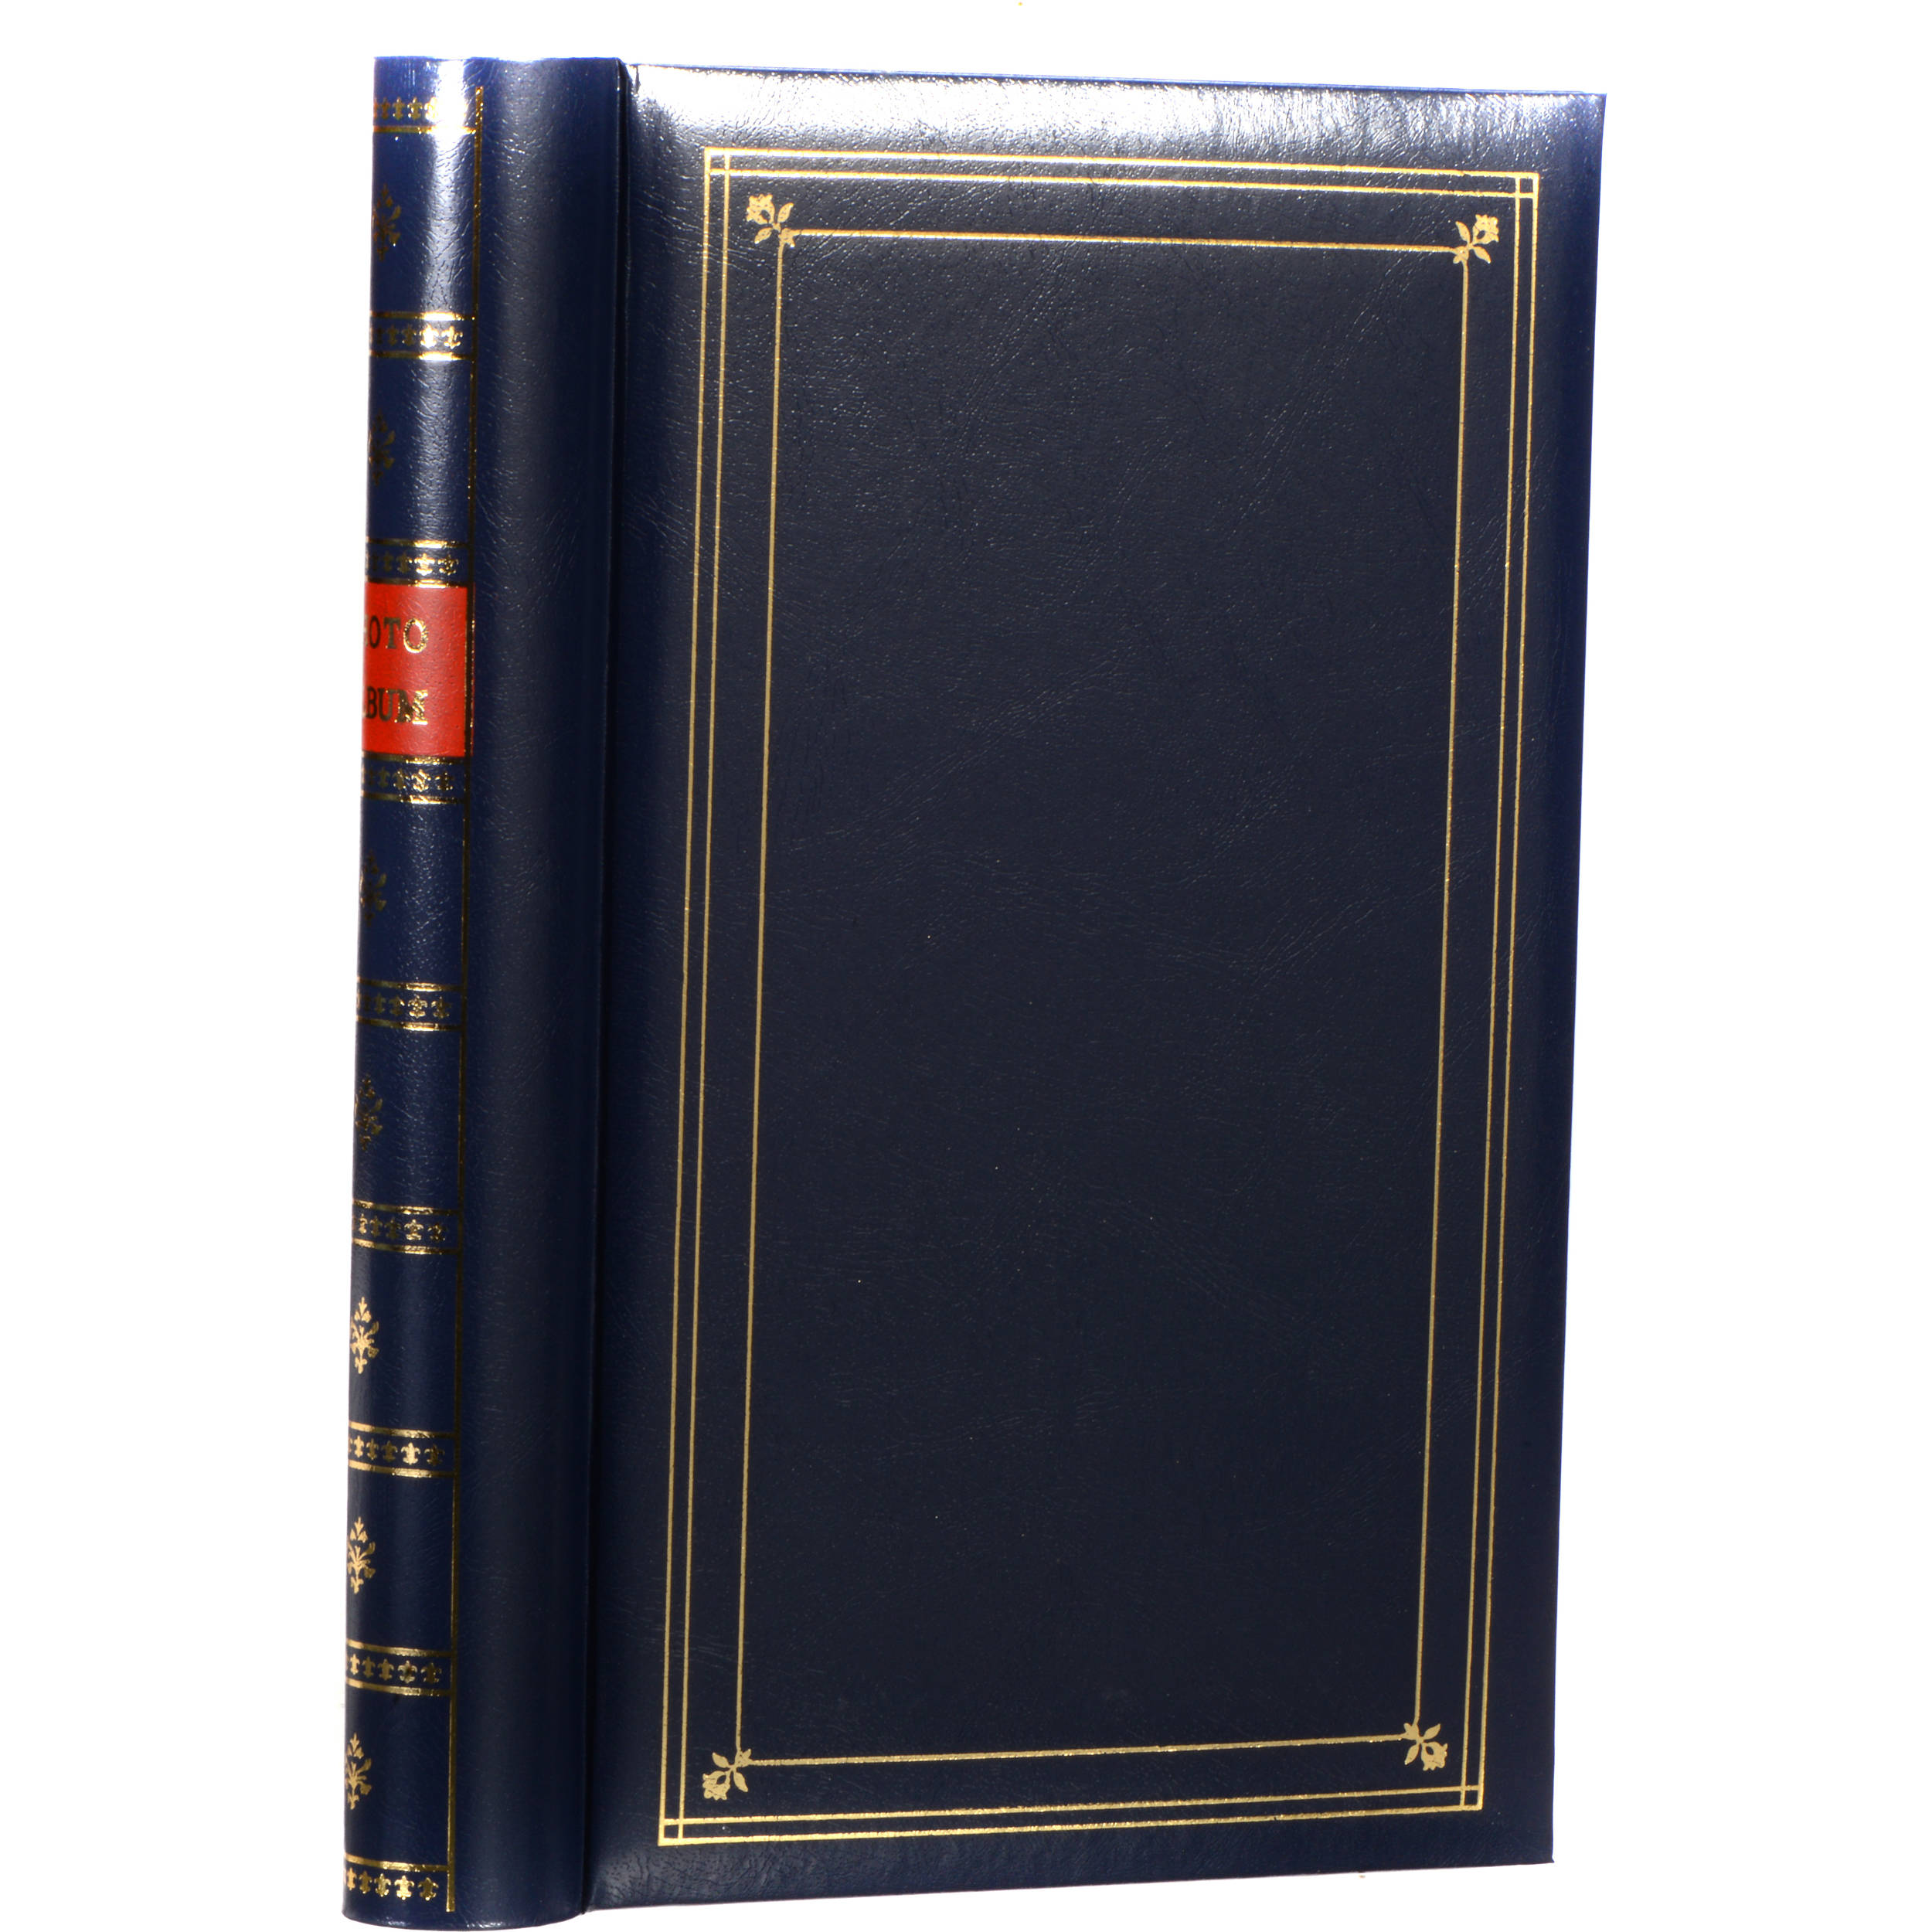 Pioneer Photo Albums Bdp 35 Photo Album Navy Blue Bdp35nb Bh